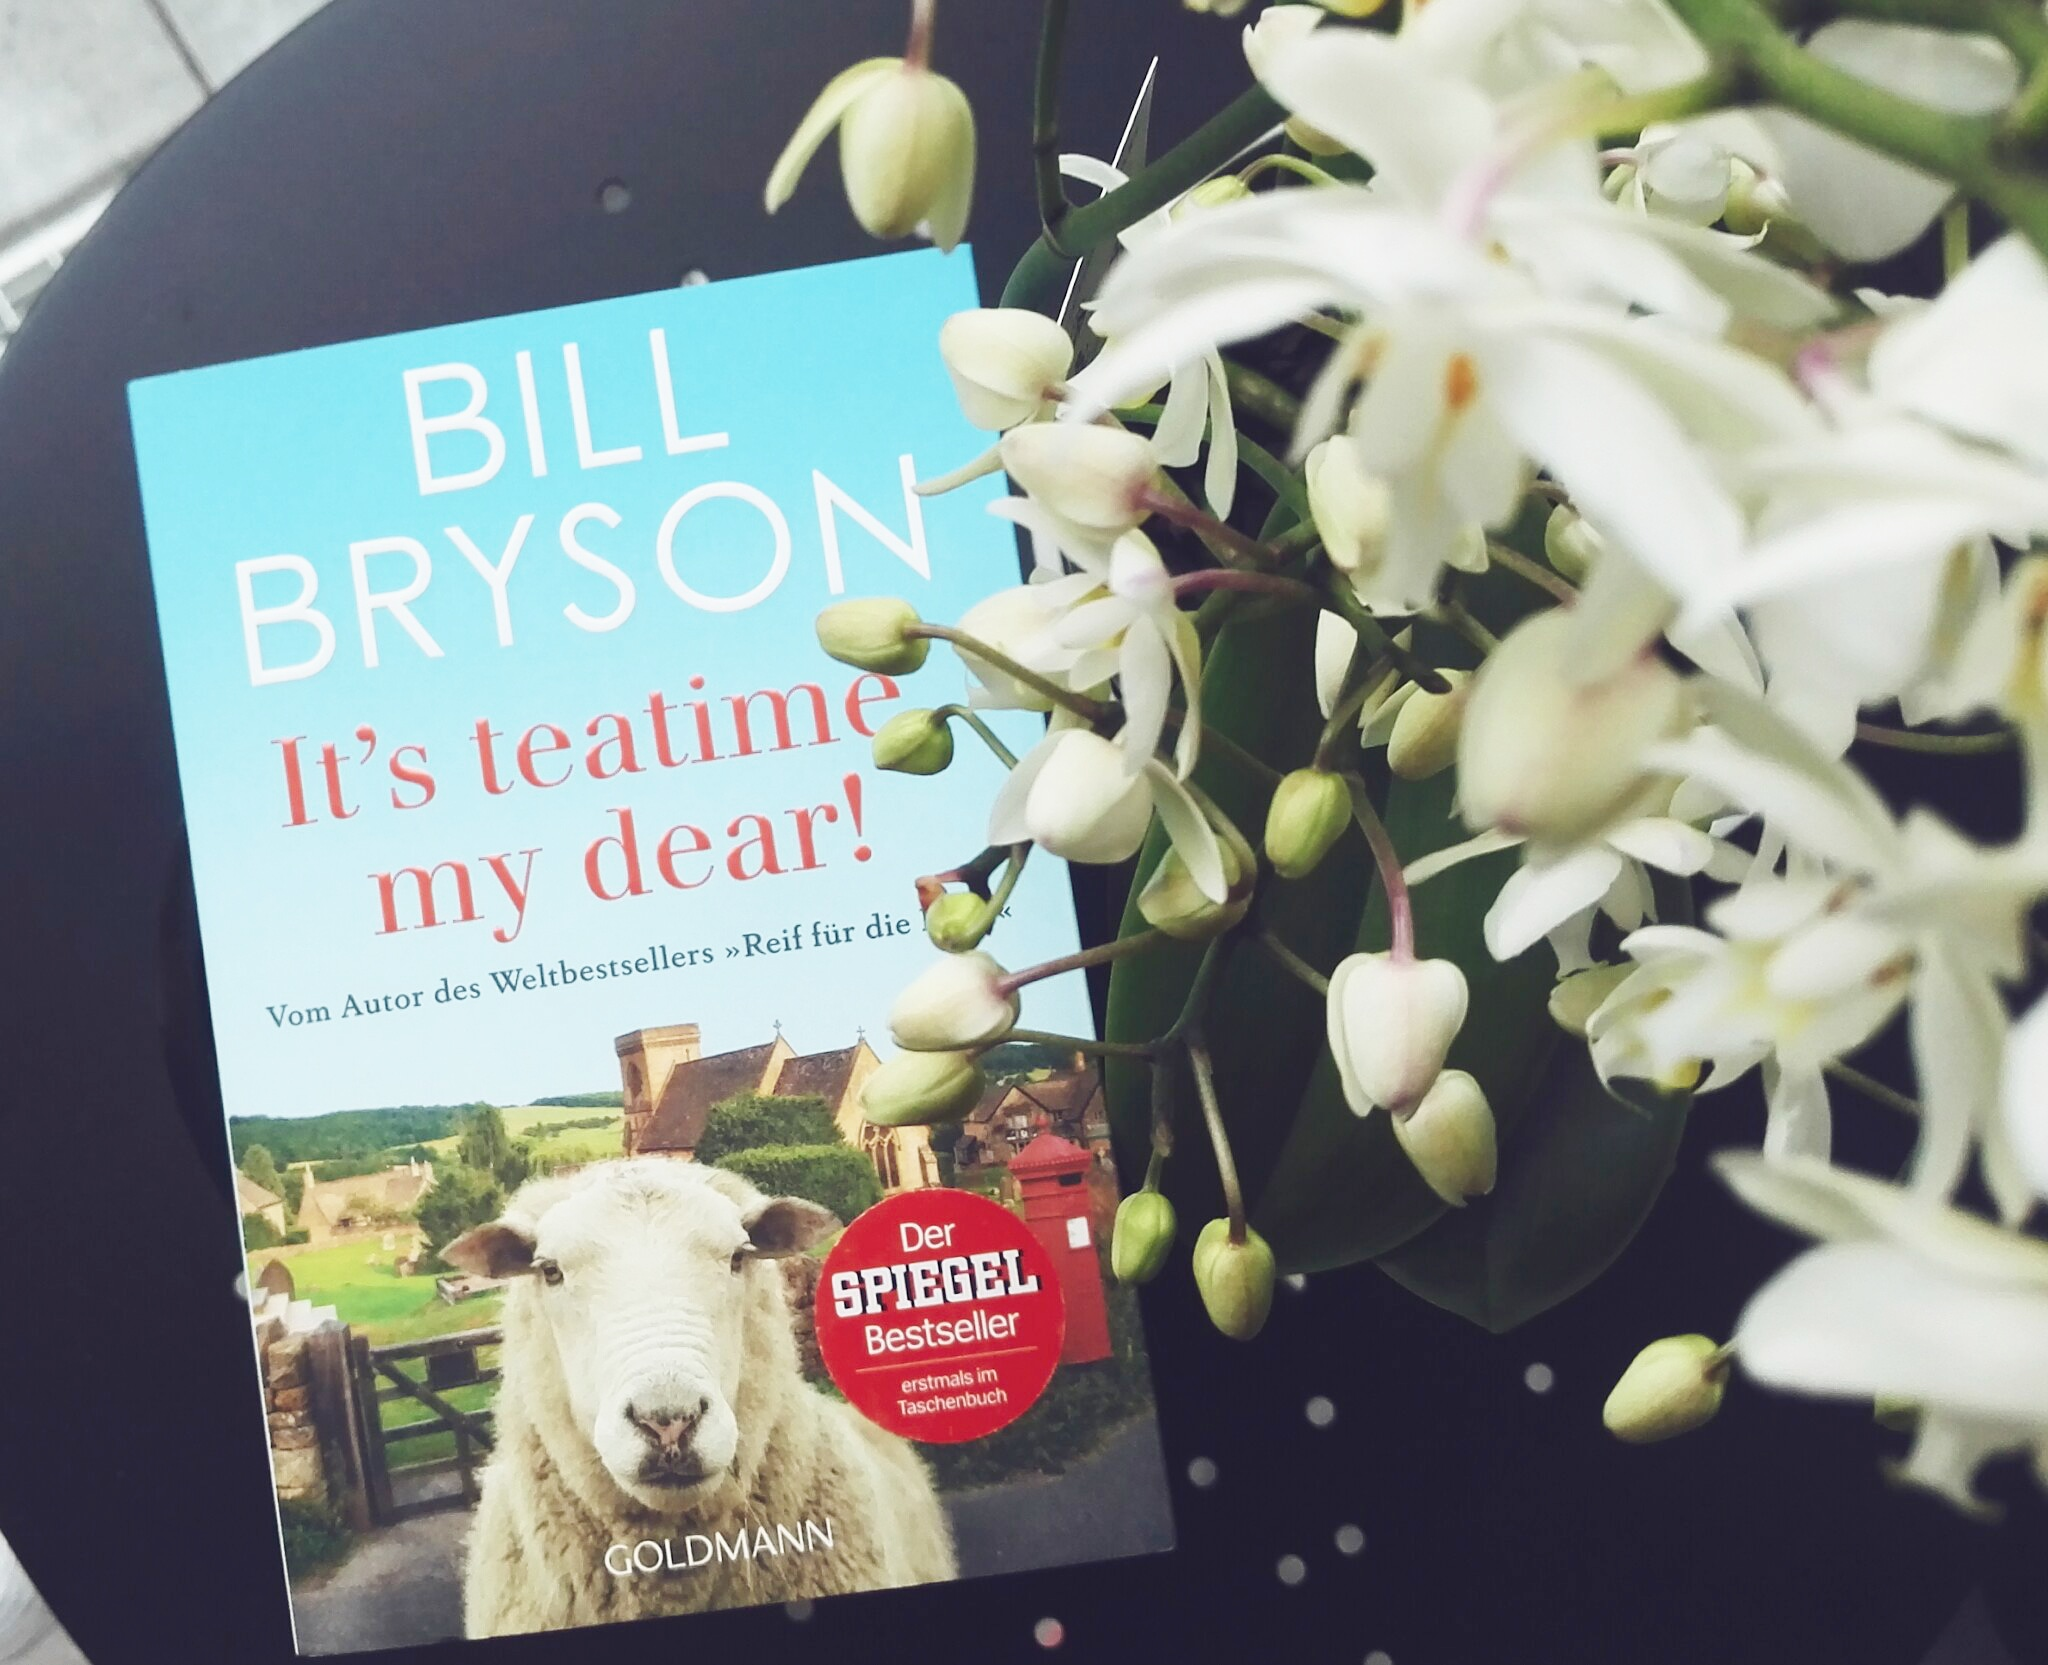 Bill Bryson, It's tea time, my dear